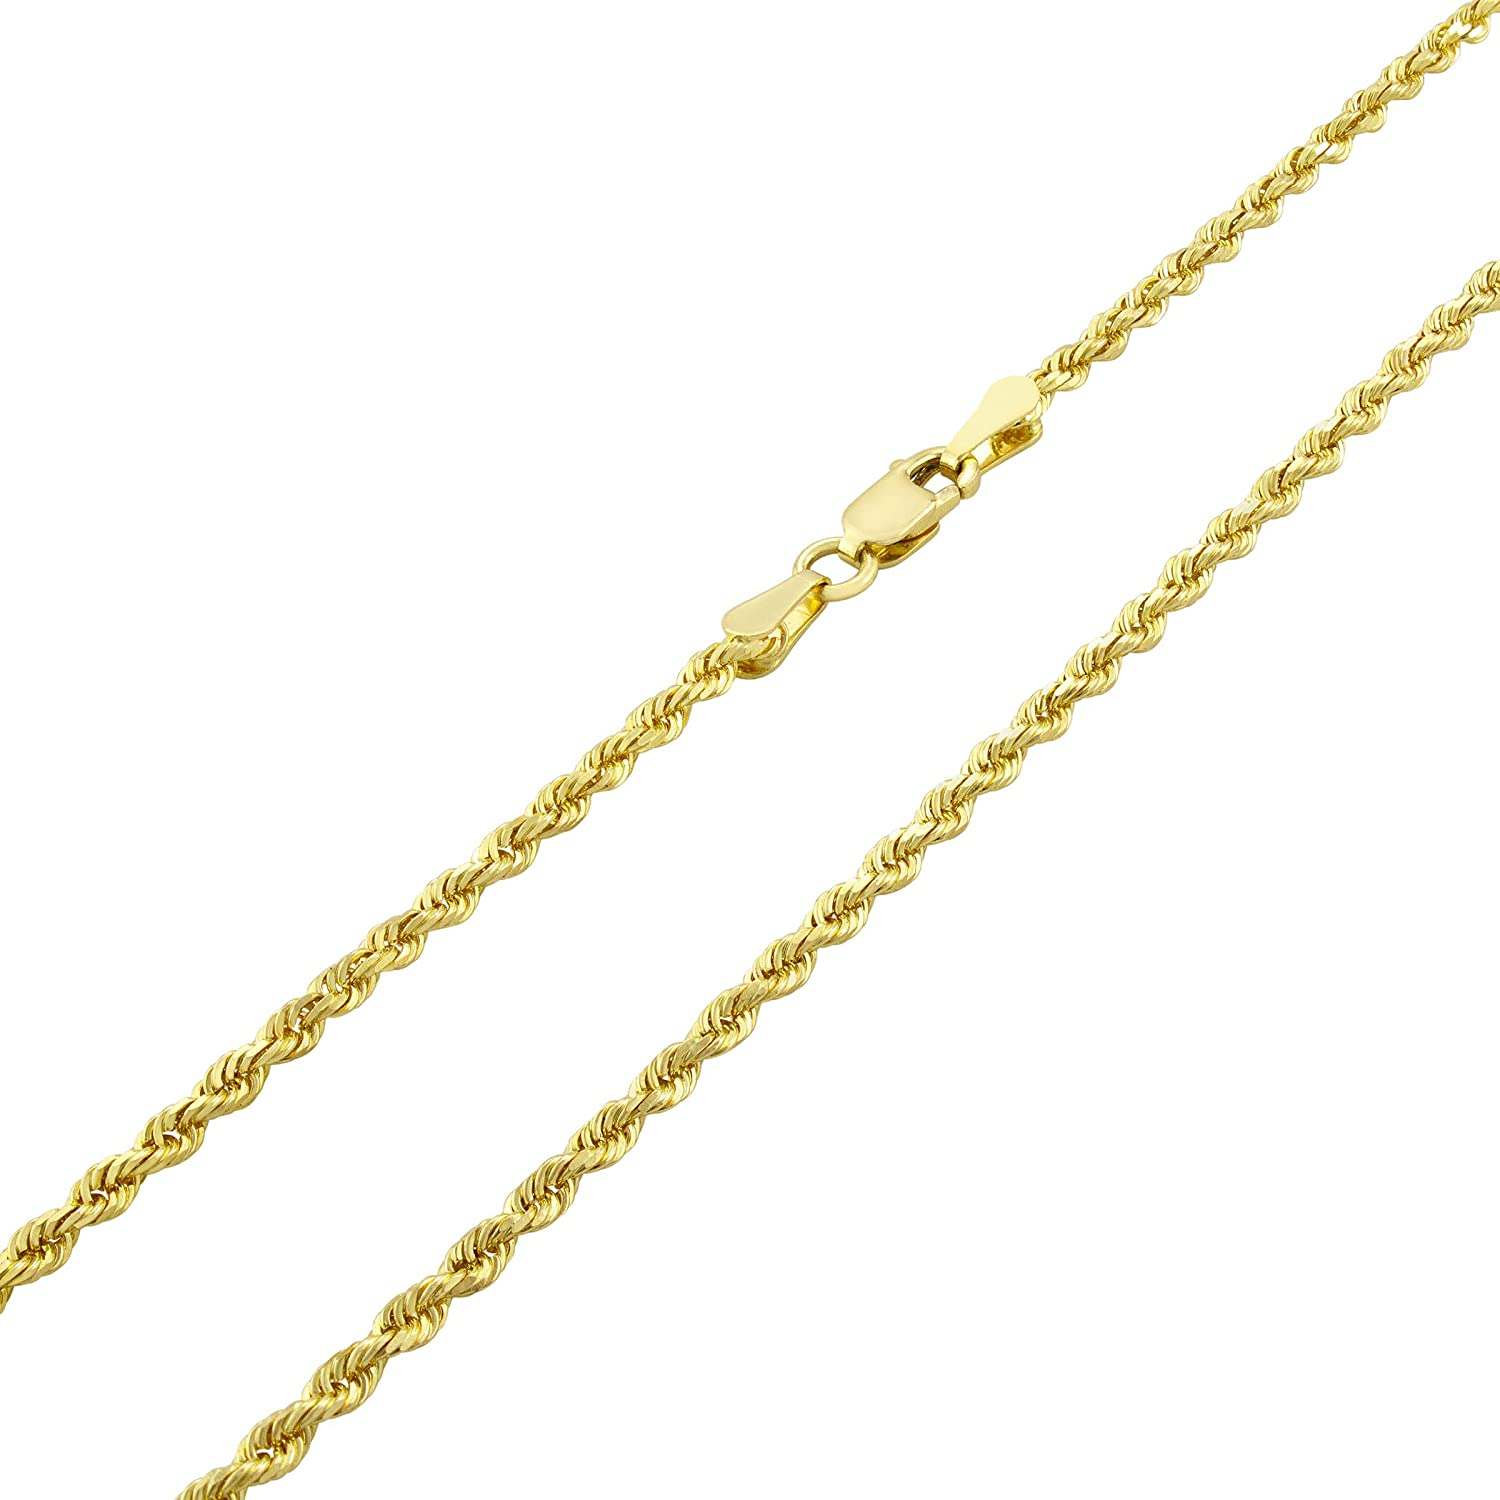 Nuragold 14k Yellow Gold 2.5mm Solid Rope Chain Diamond Cut Pendant Necklace, Mens Womens Lobster Lock 16